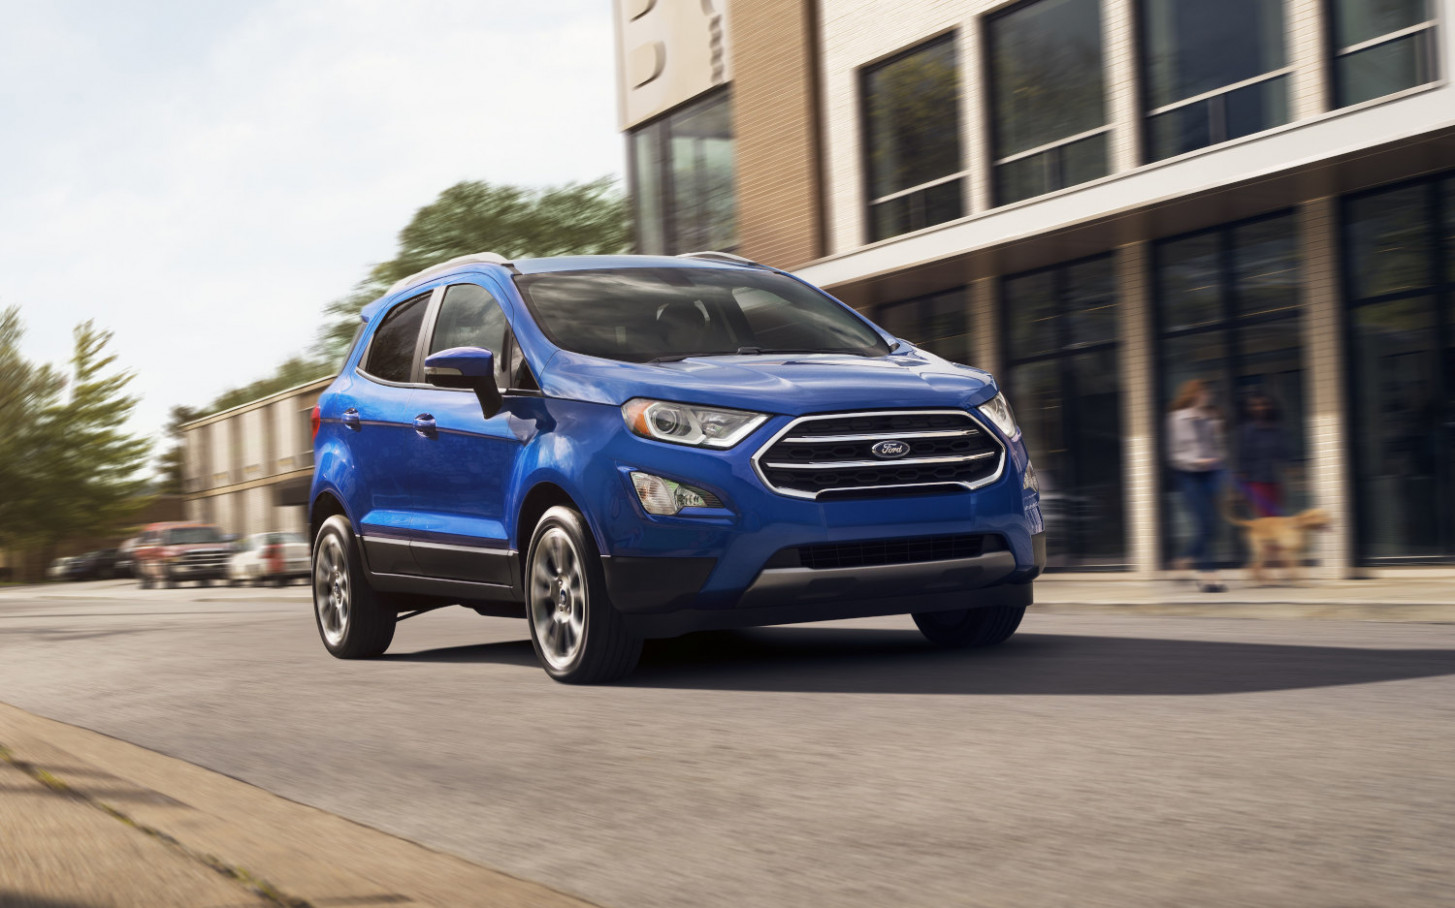 Performance and New Engine 2022 Ford Ecosport